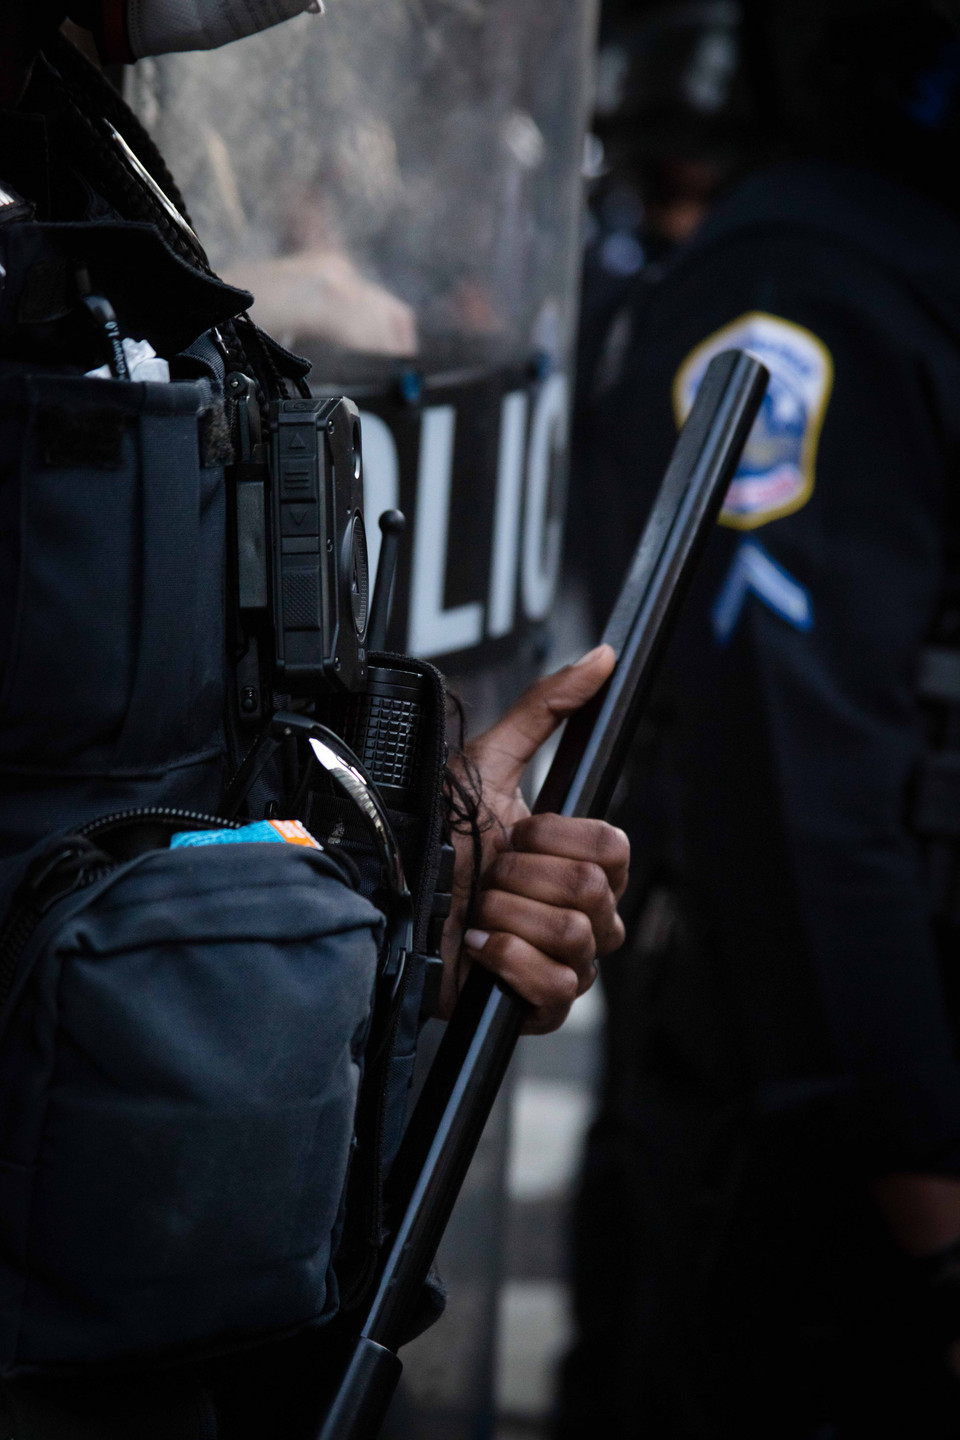 A police officer clutches her baton as she and her fellow officers create a wall to block protesters from nearing the White House.